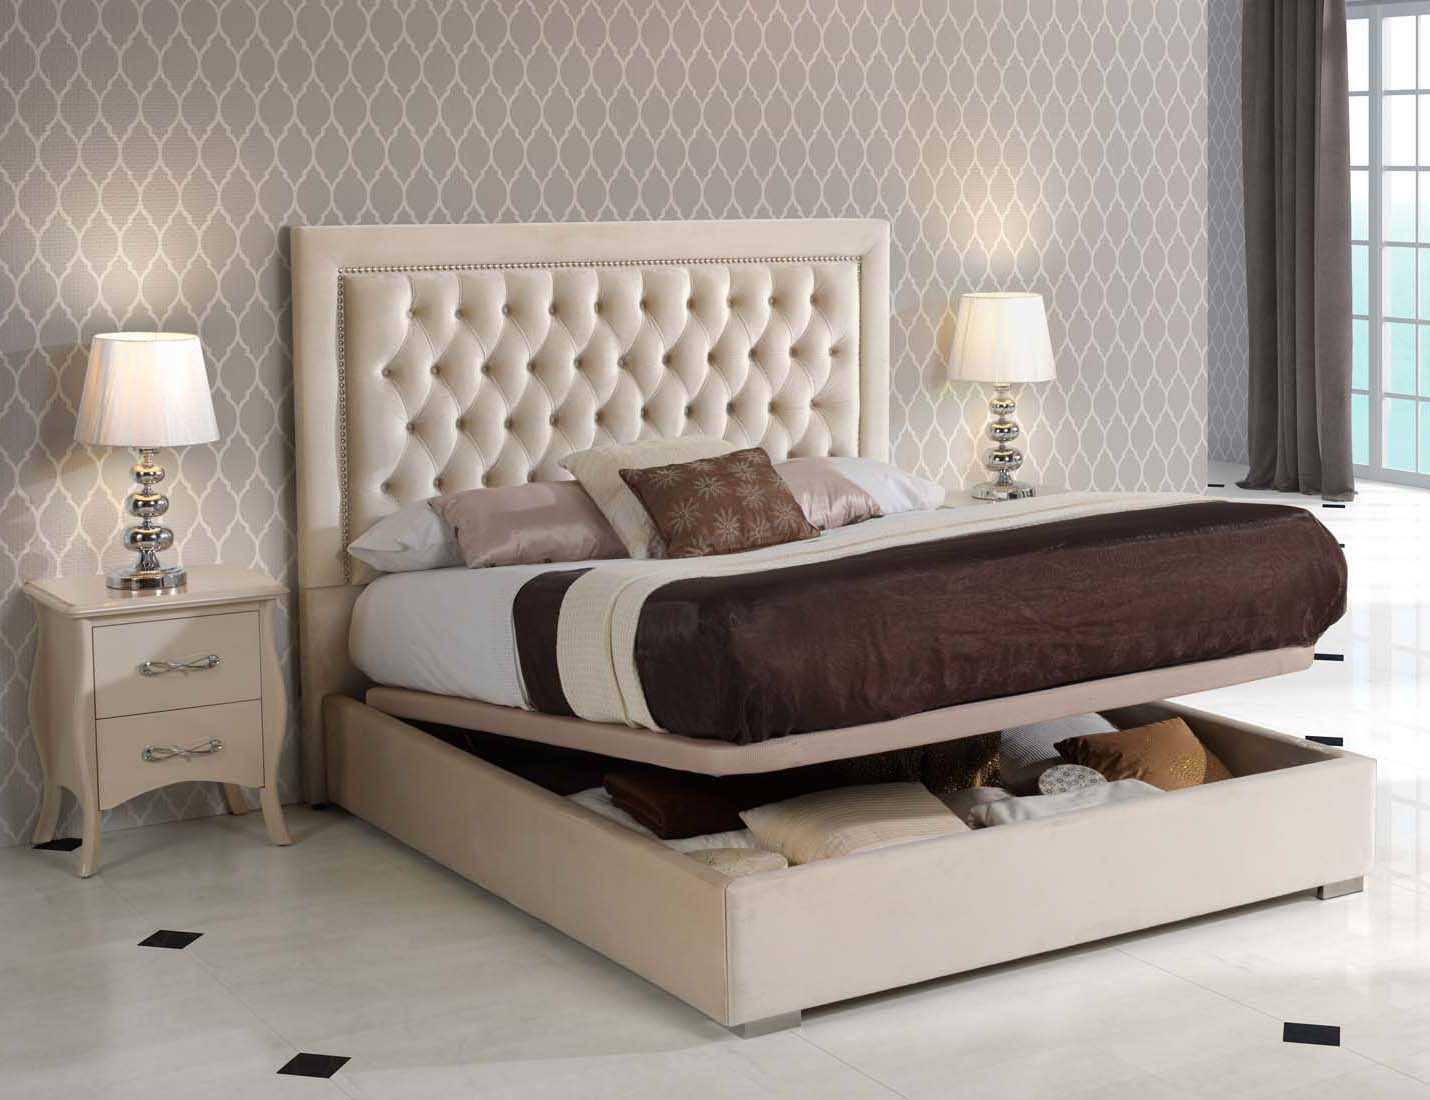 High End Modern Design Cream Bedroom Set - Click Image to Close